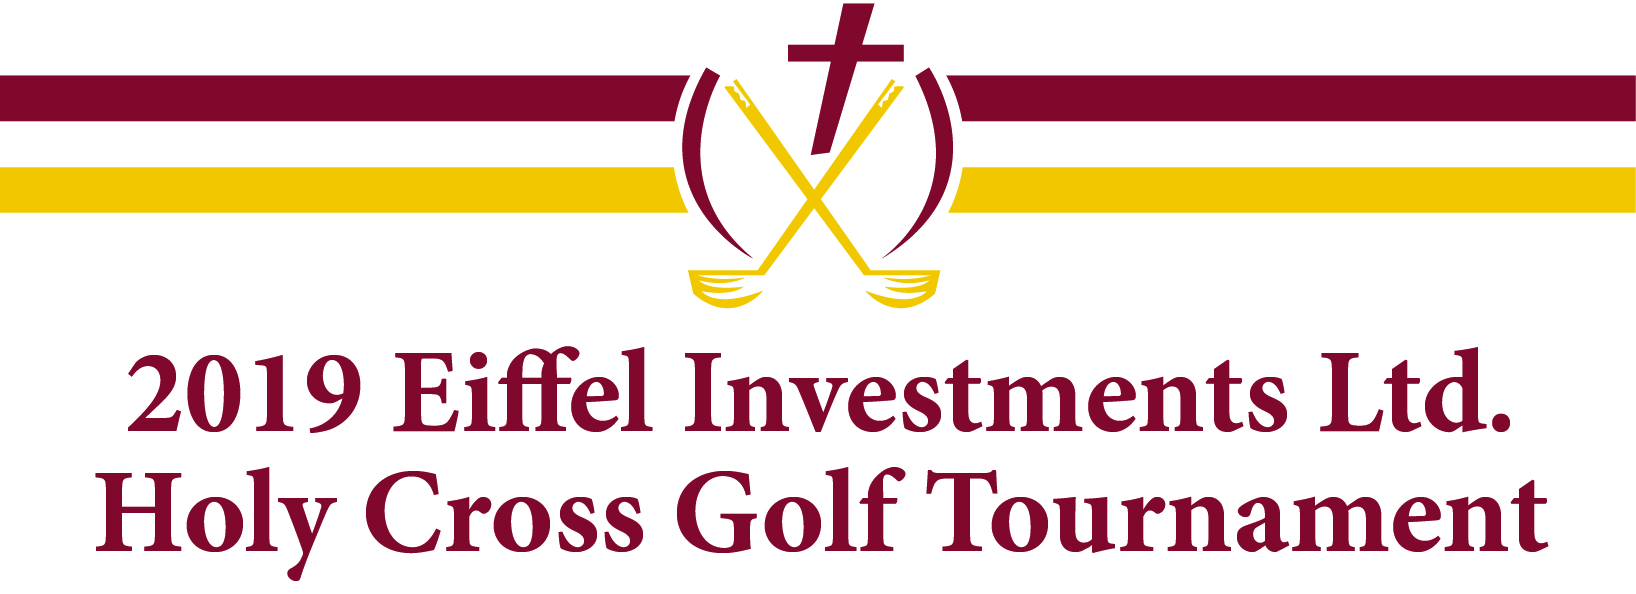 2019 Holy Cross Golf Tournament logo